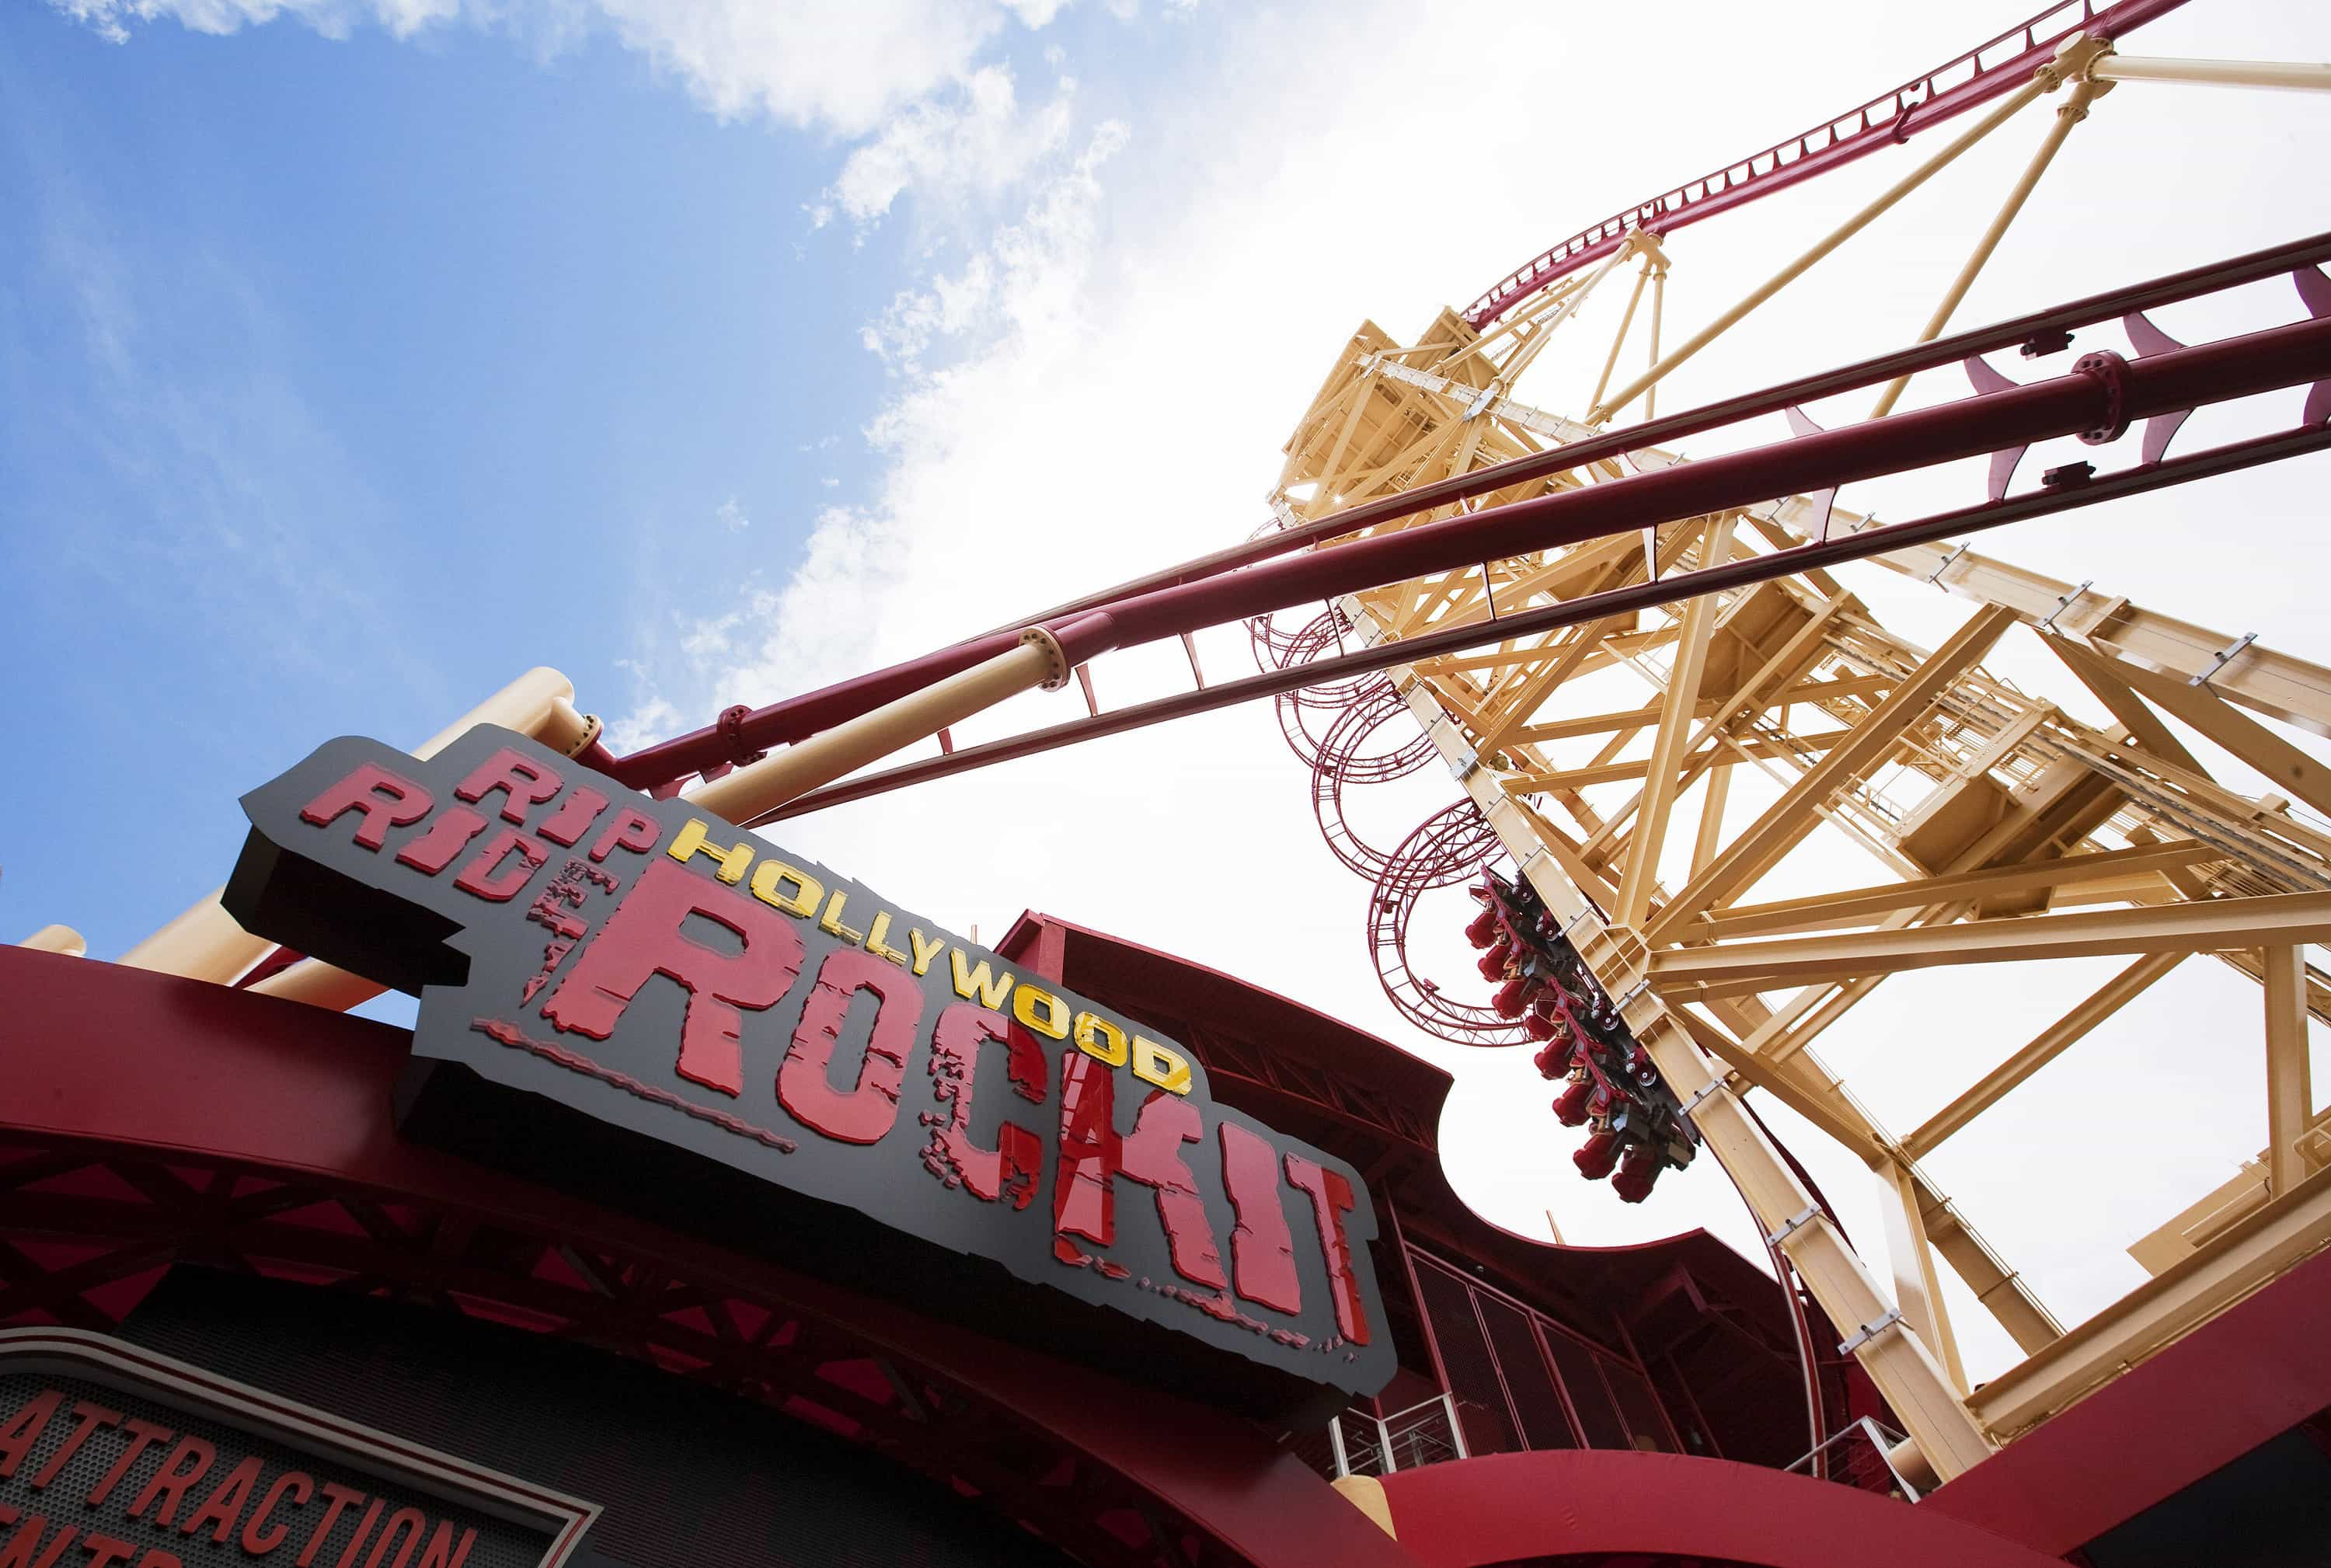 5 tallest and fastest roller coasters in Orlando